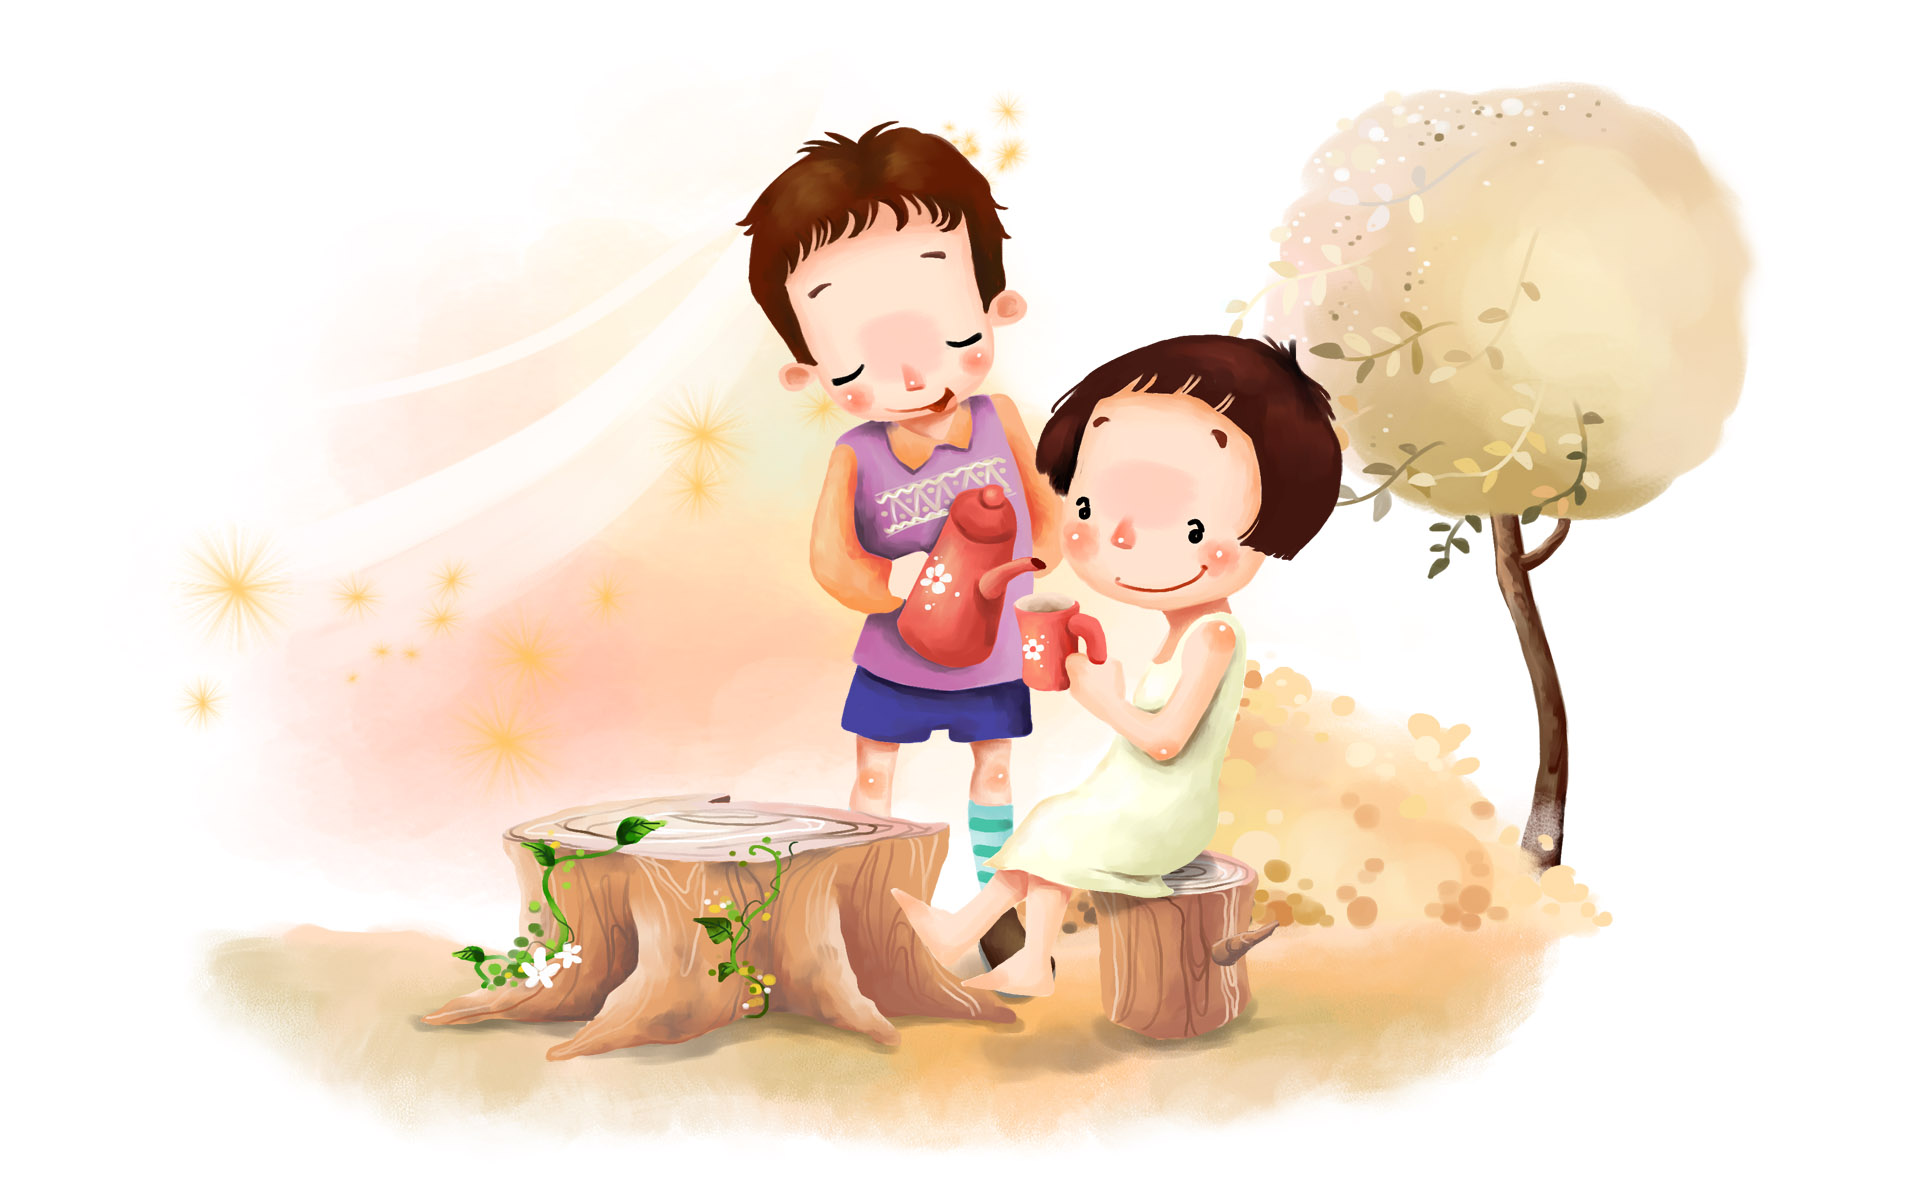 cartoon Boy And Girl Love Wallpaper Hd : cute cartoons 14247 1920x1200 px ~ HDWallSource.com